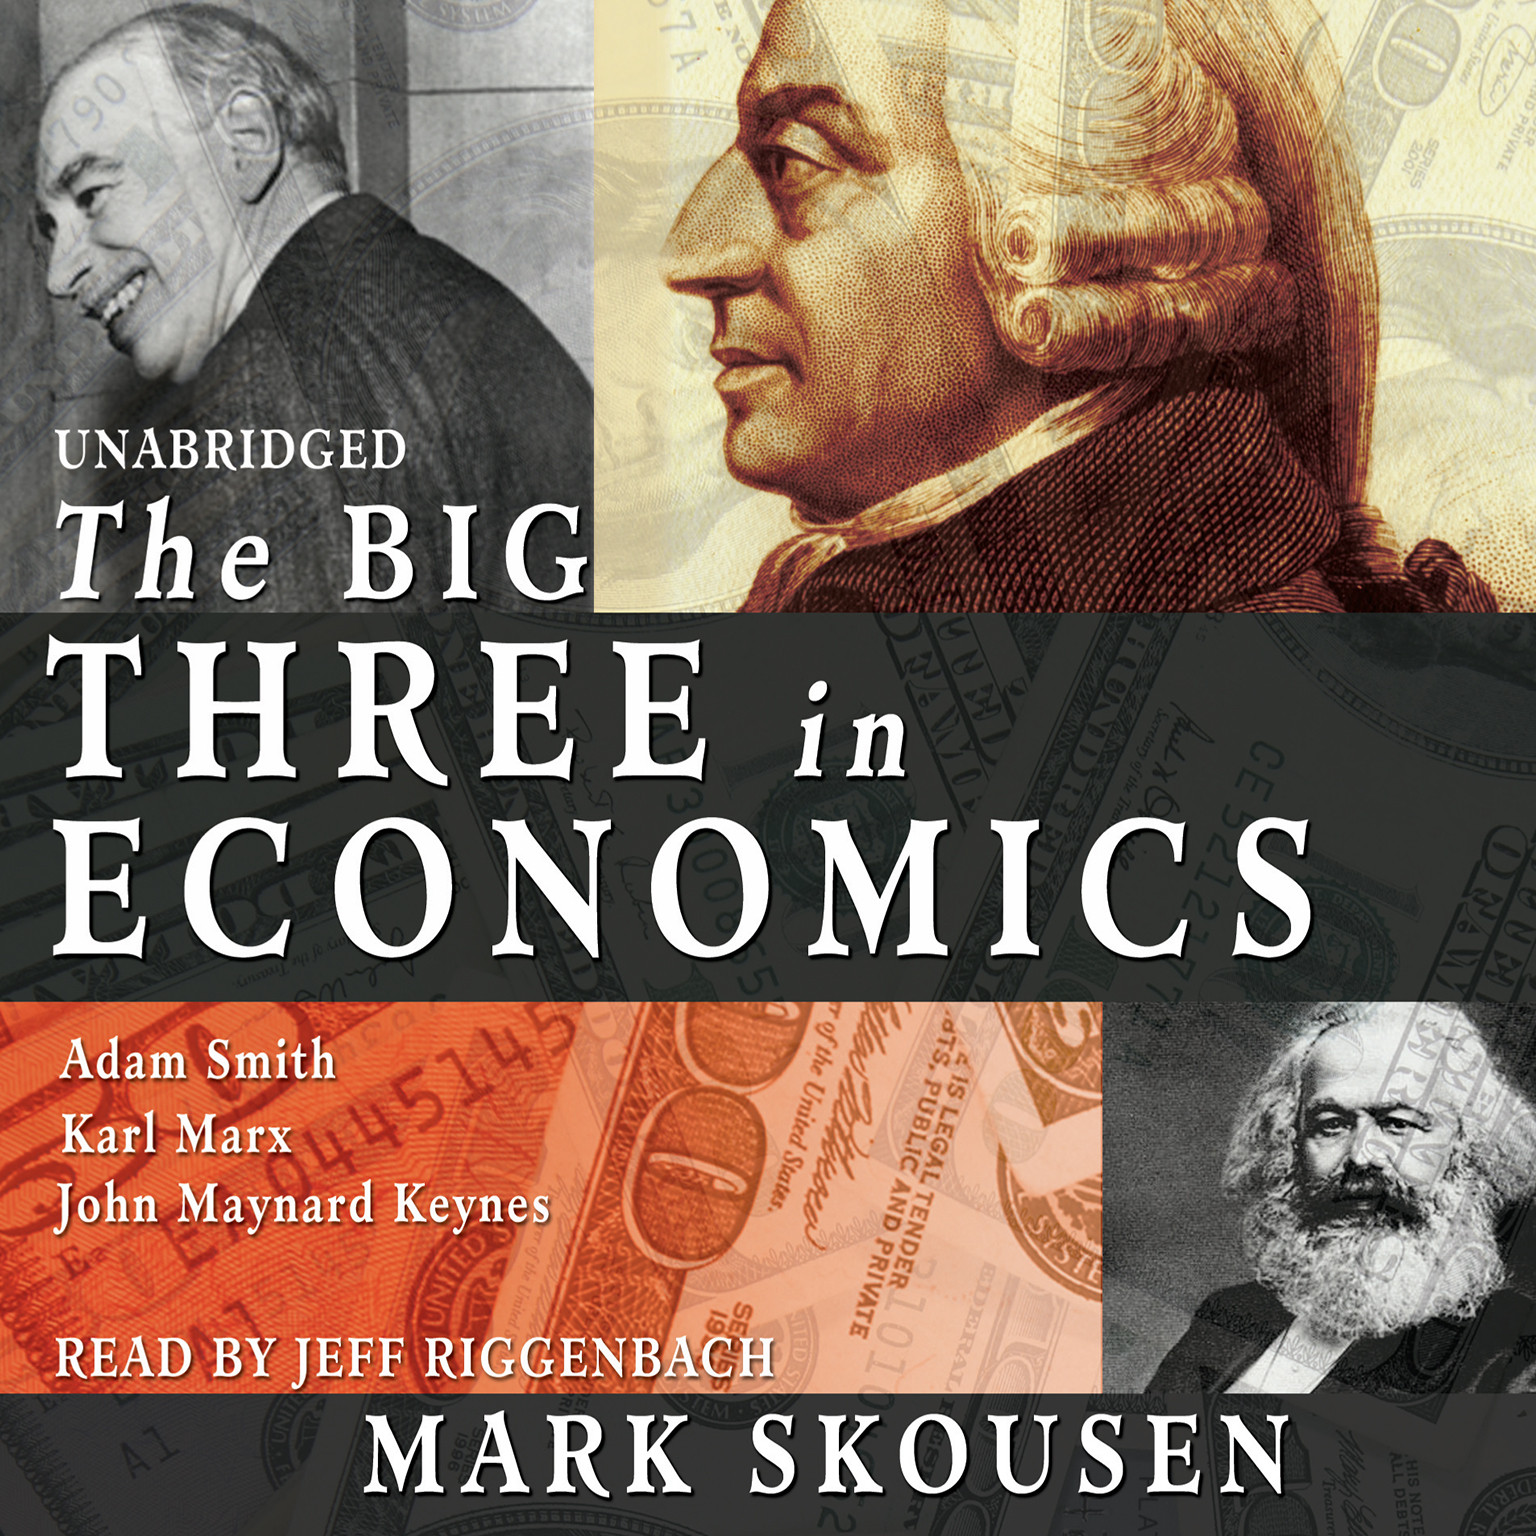 Printable The Big Three in Economics: Adam Smith, Karl Marx, and John Maynard Keynes Audiobook Cover Art